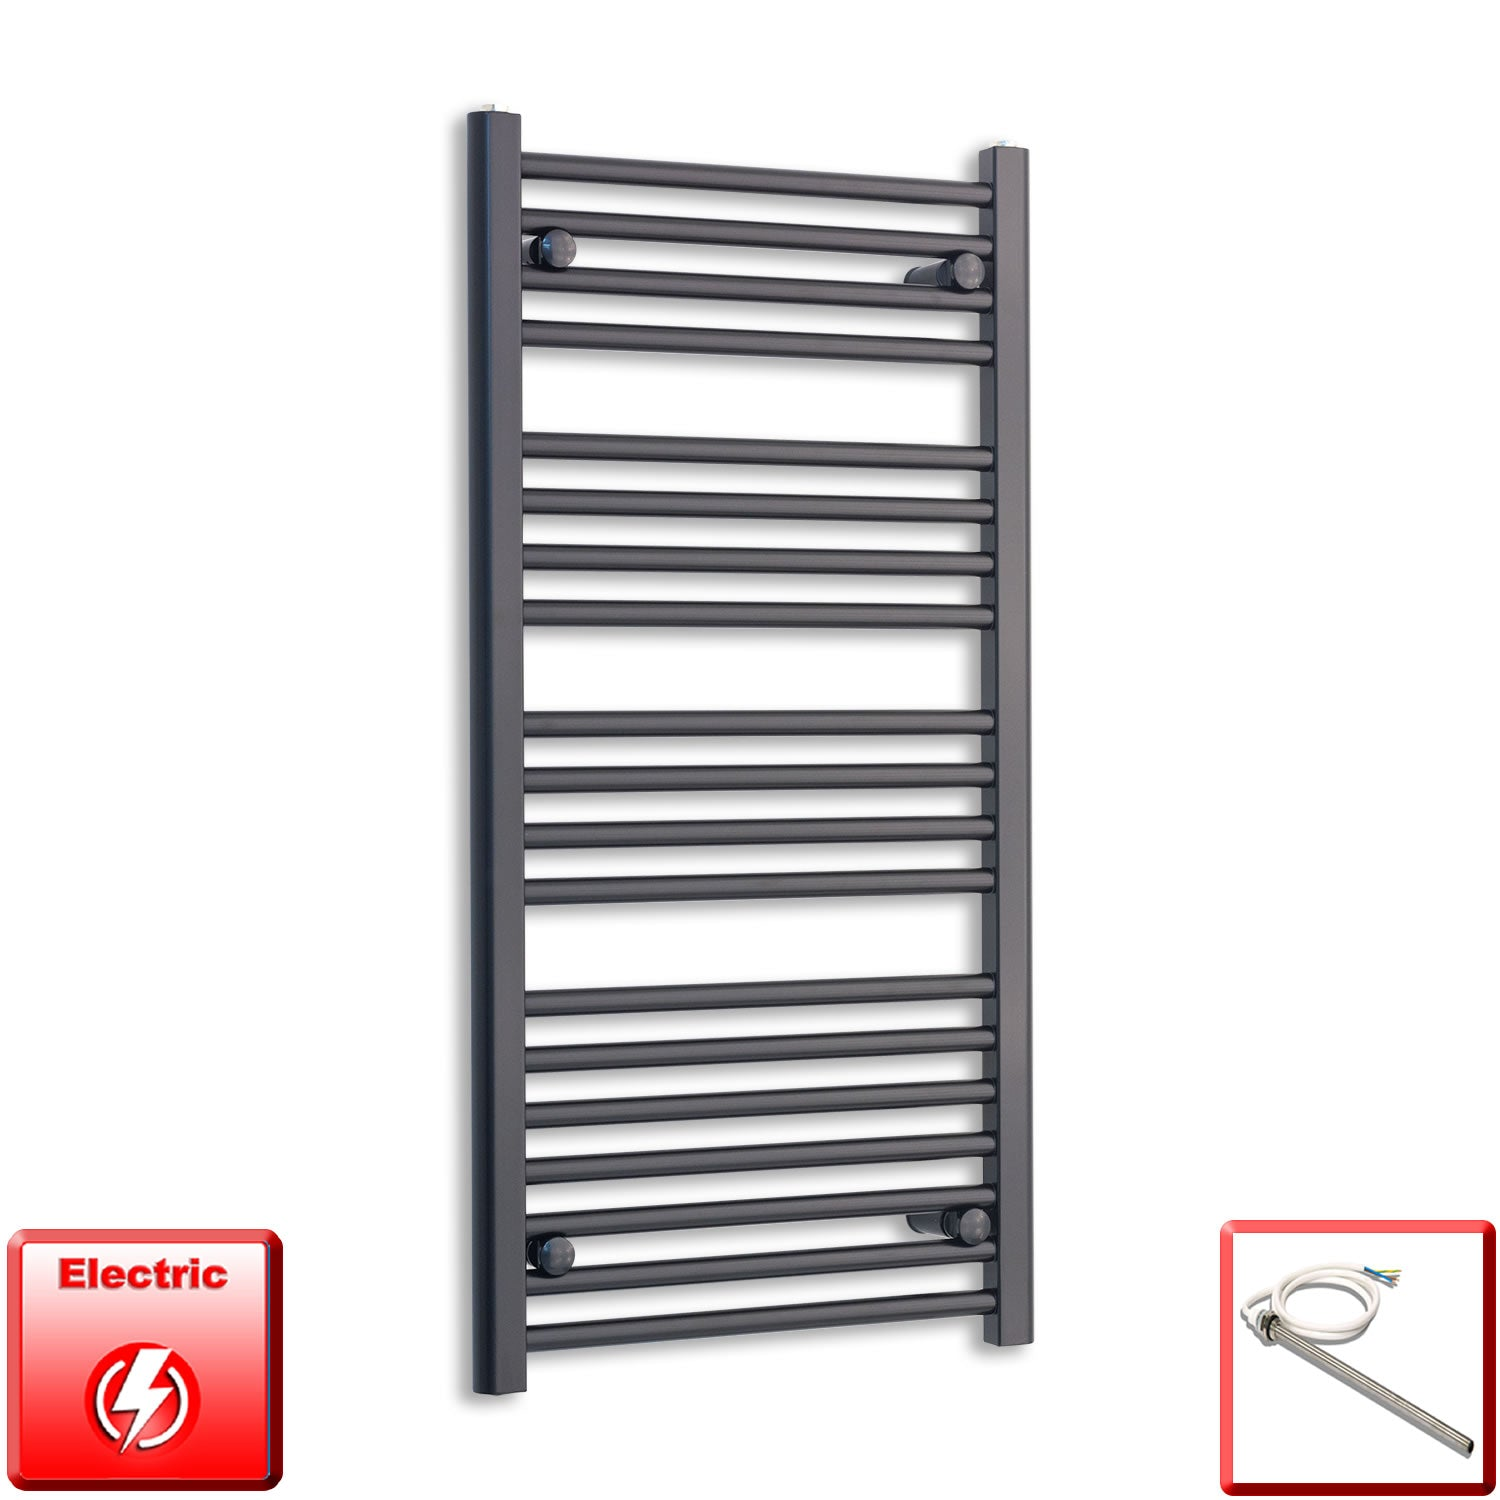 600mm Wide 1000mm High Pre-Filled Black Electric Towel Rail Radiator With Single Heat Element